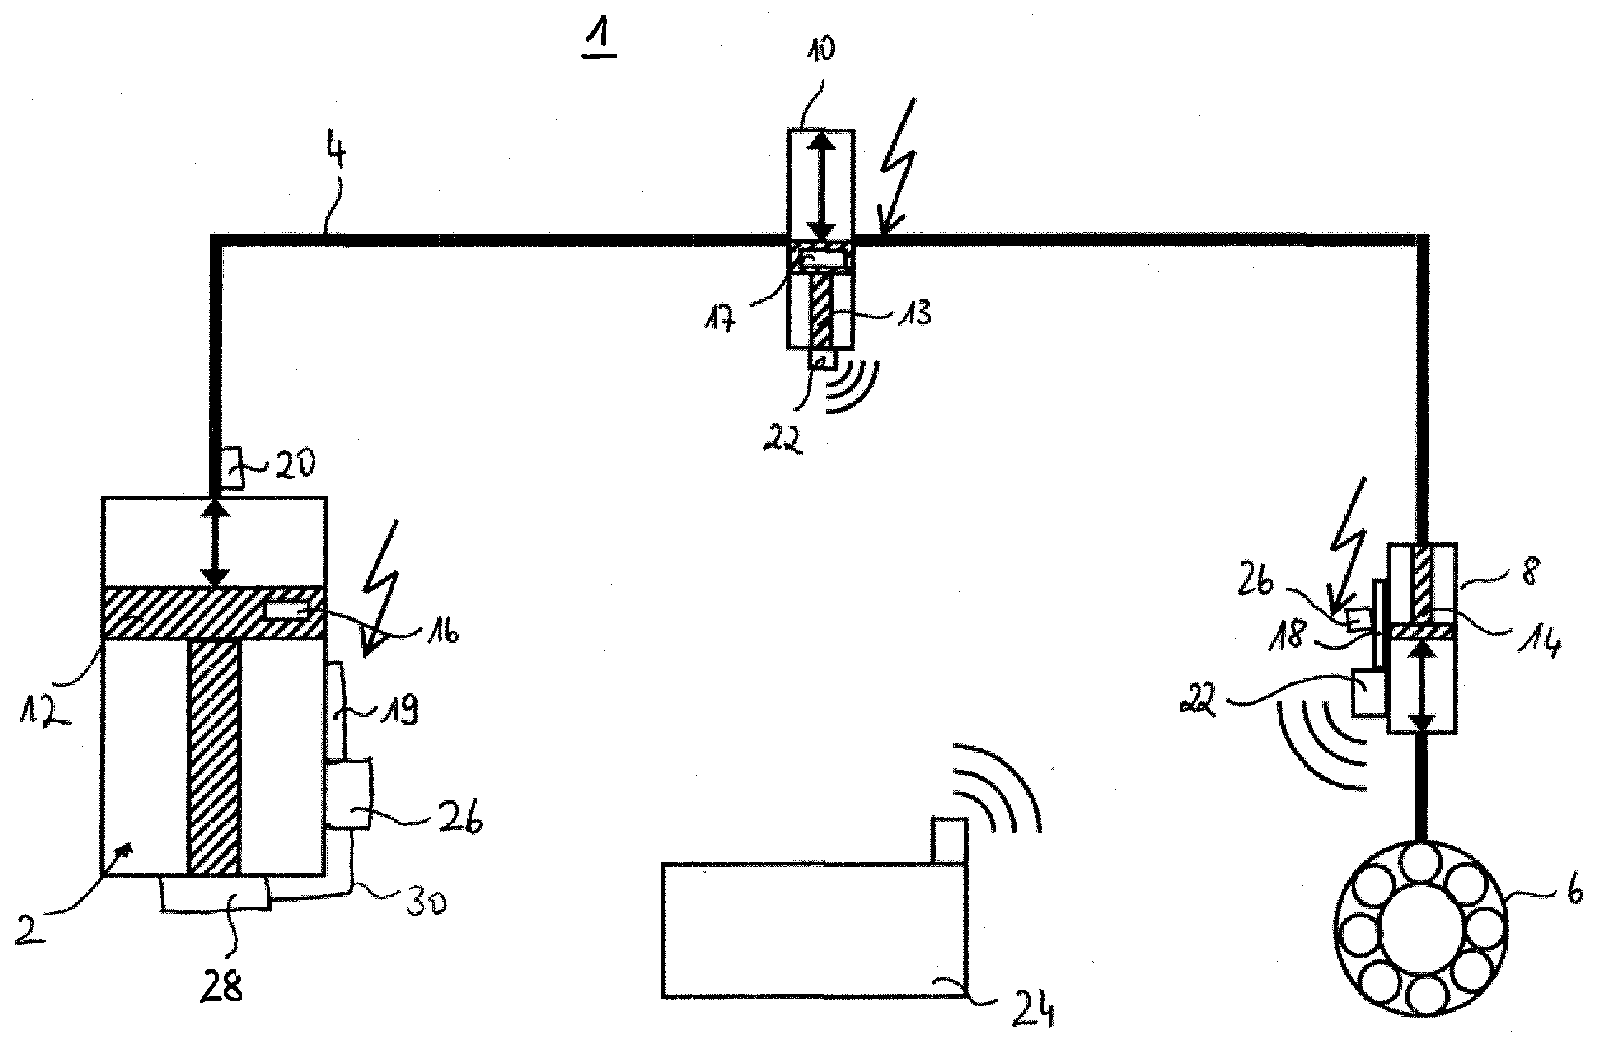 Hydraulic Loading Arms : Marine loading arm monitoring system patent